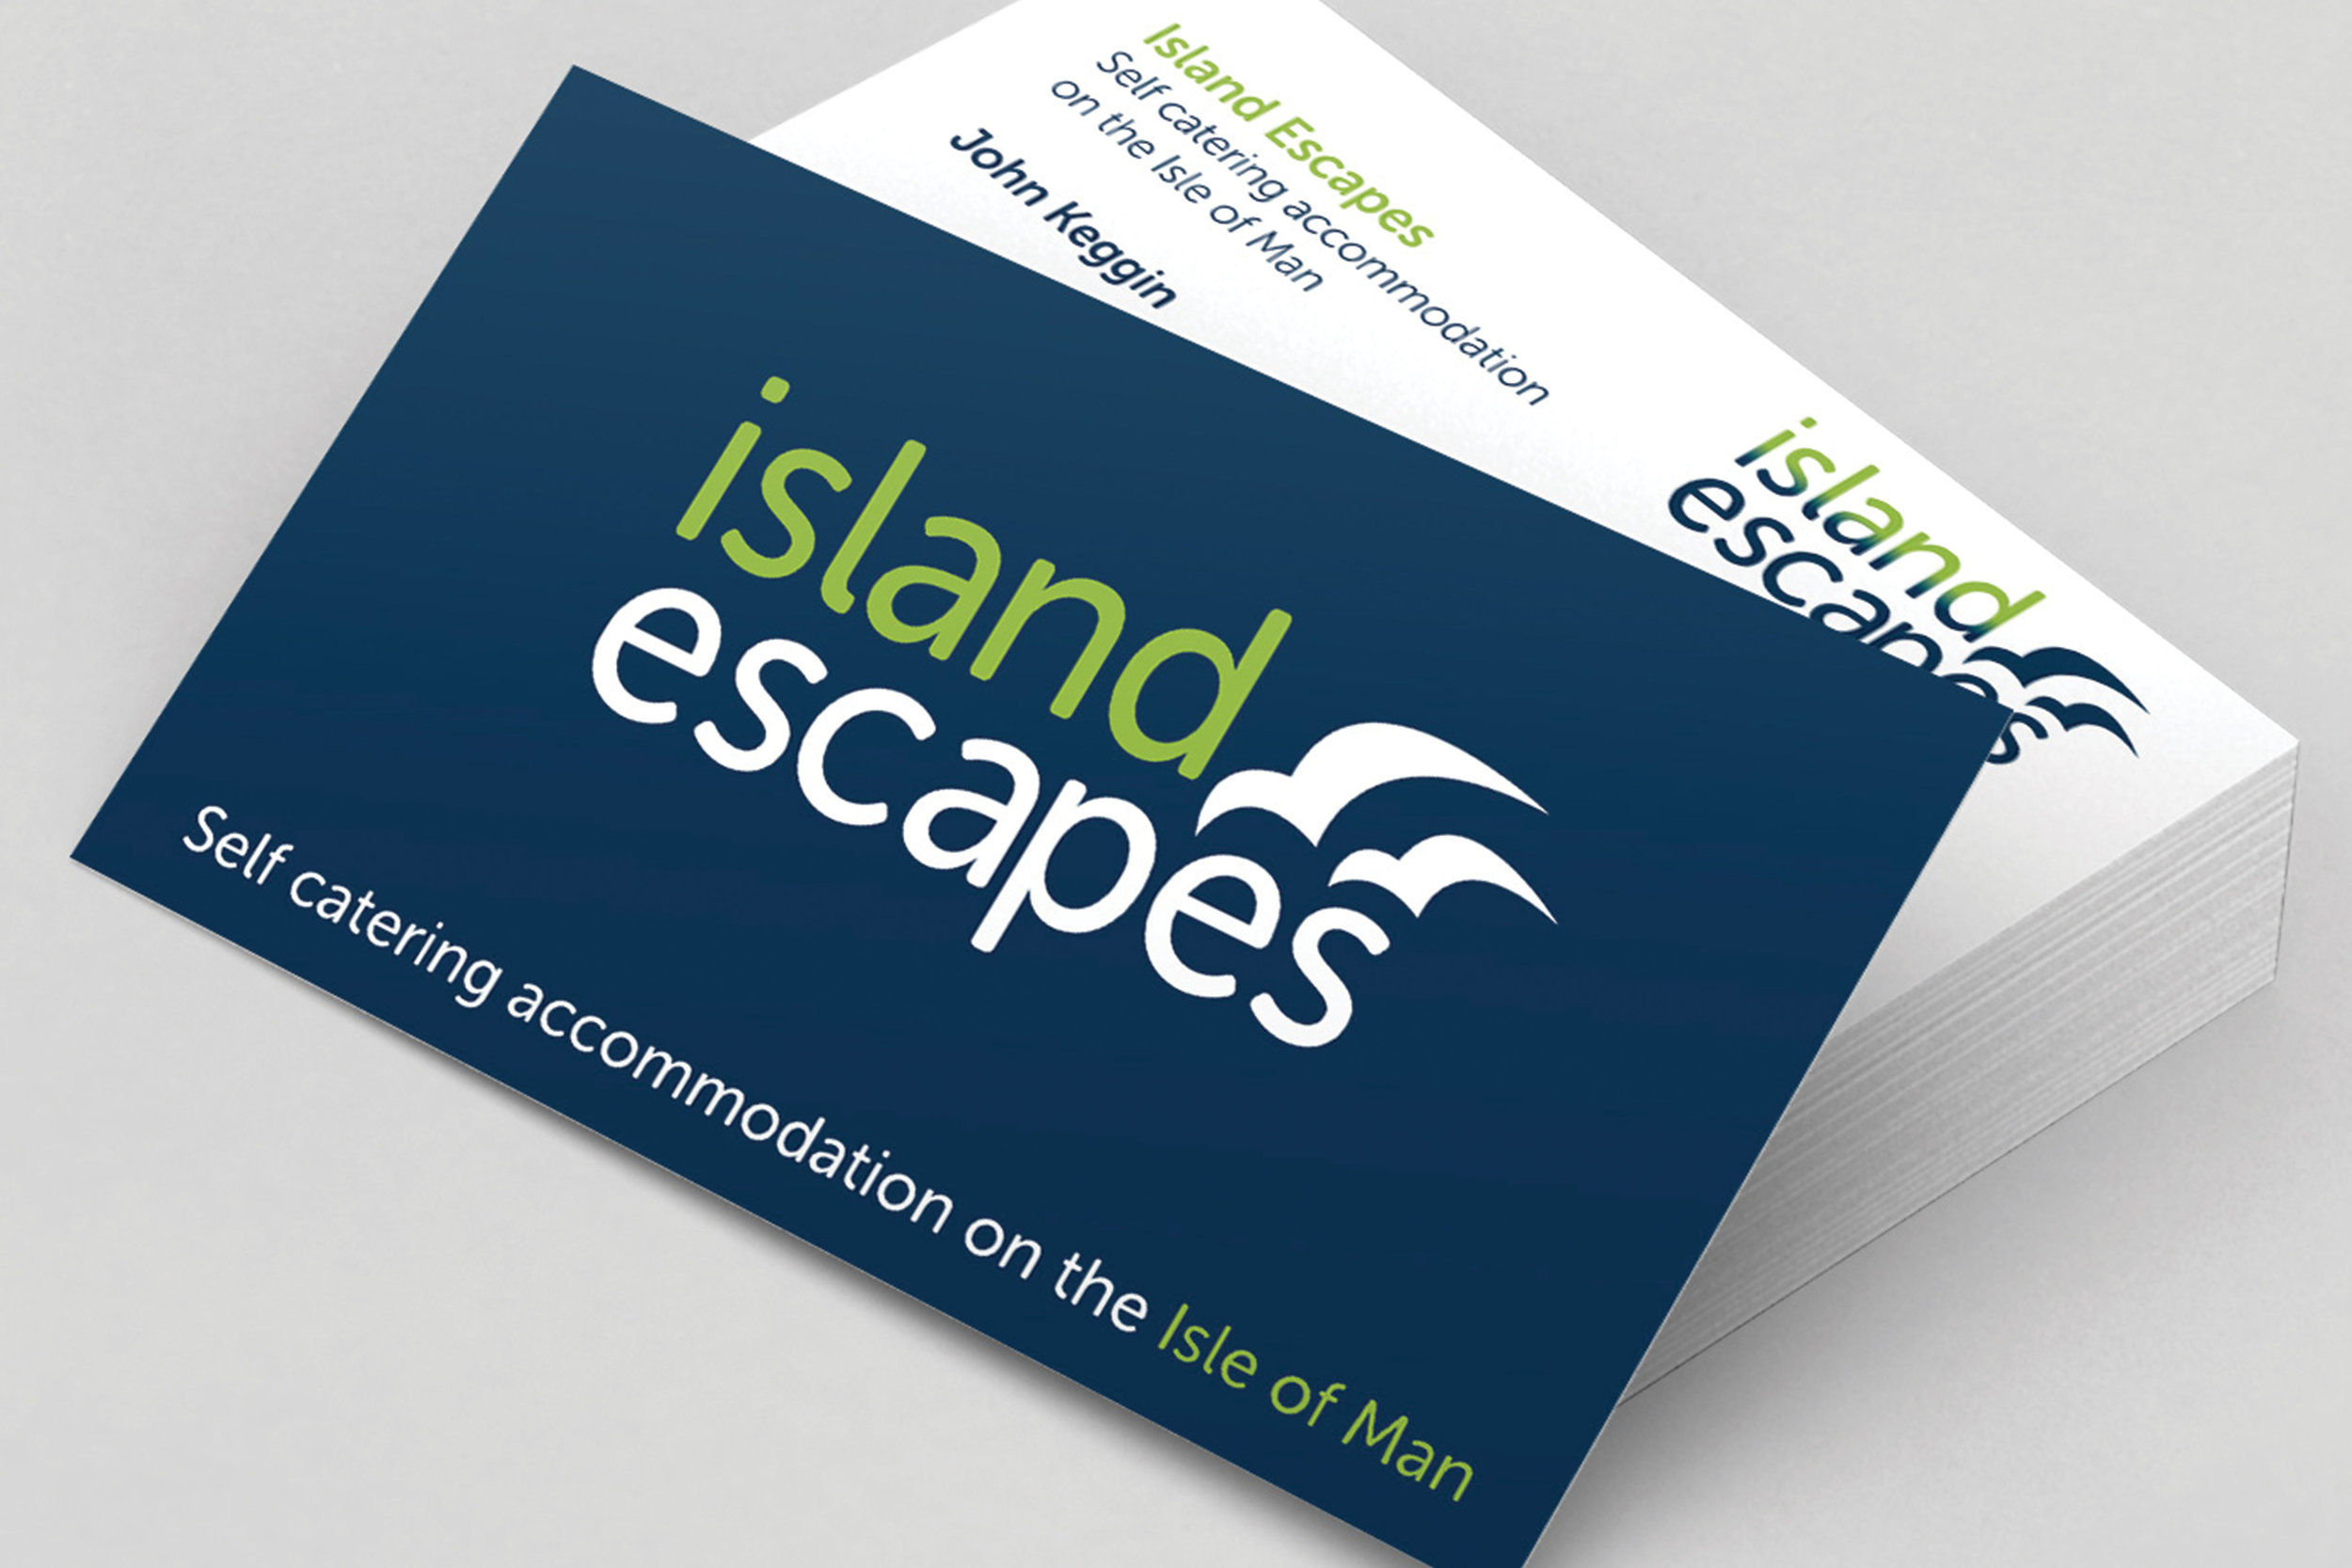 Island Escapes brand identity and marketing collateral